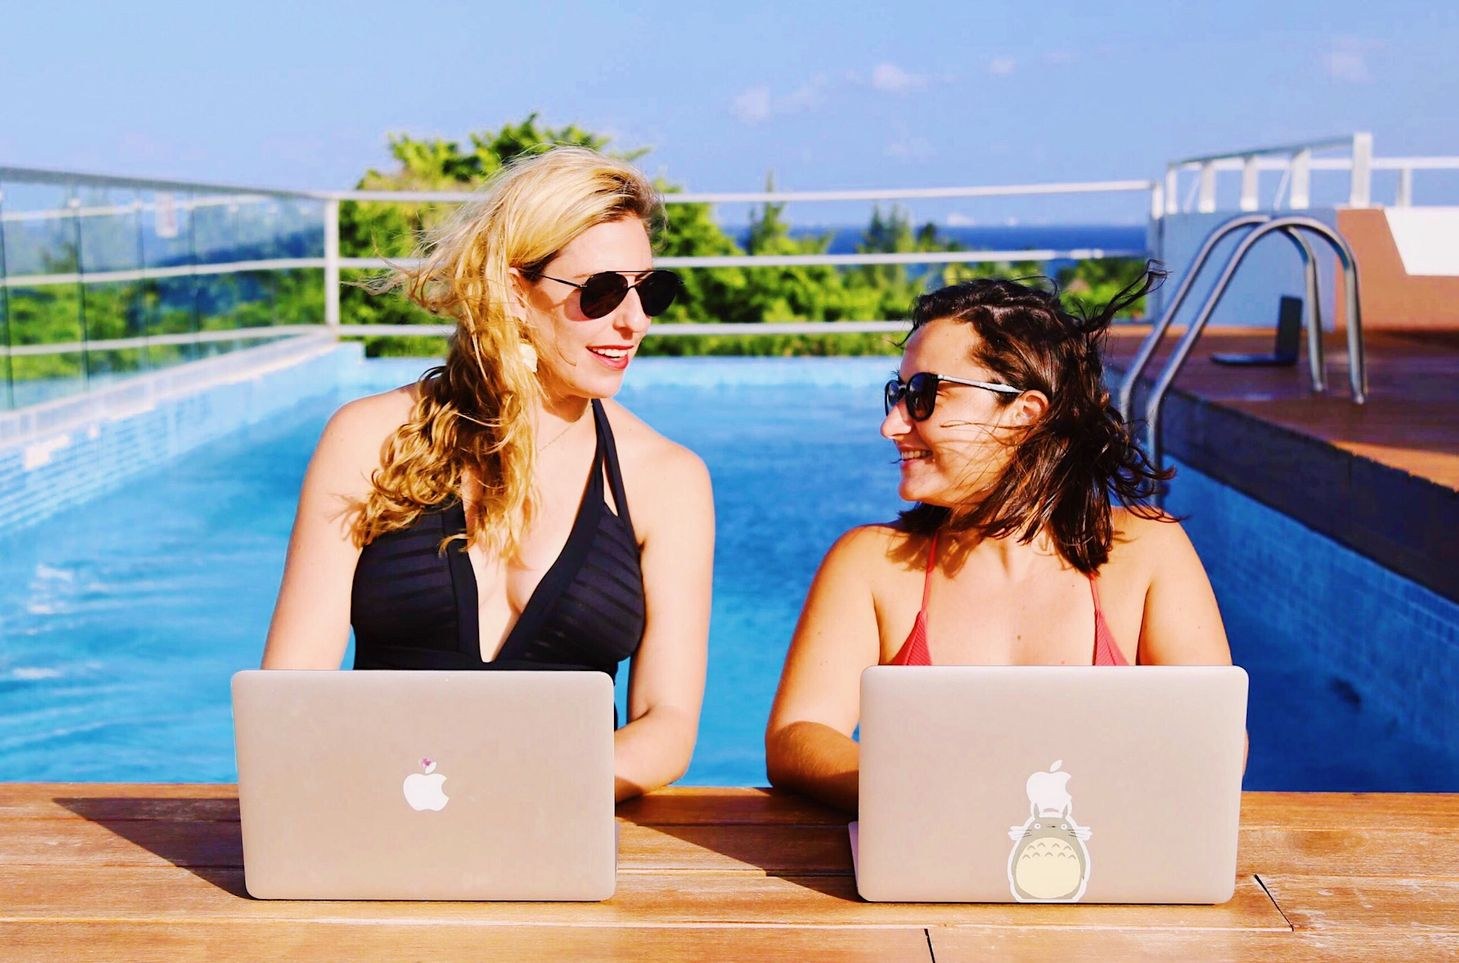 remote-working-at-the-pool